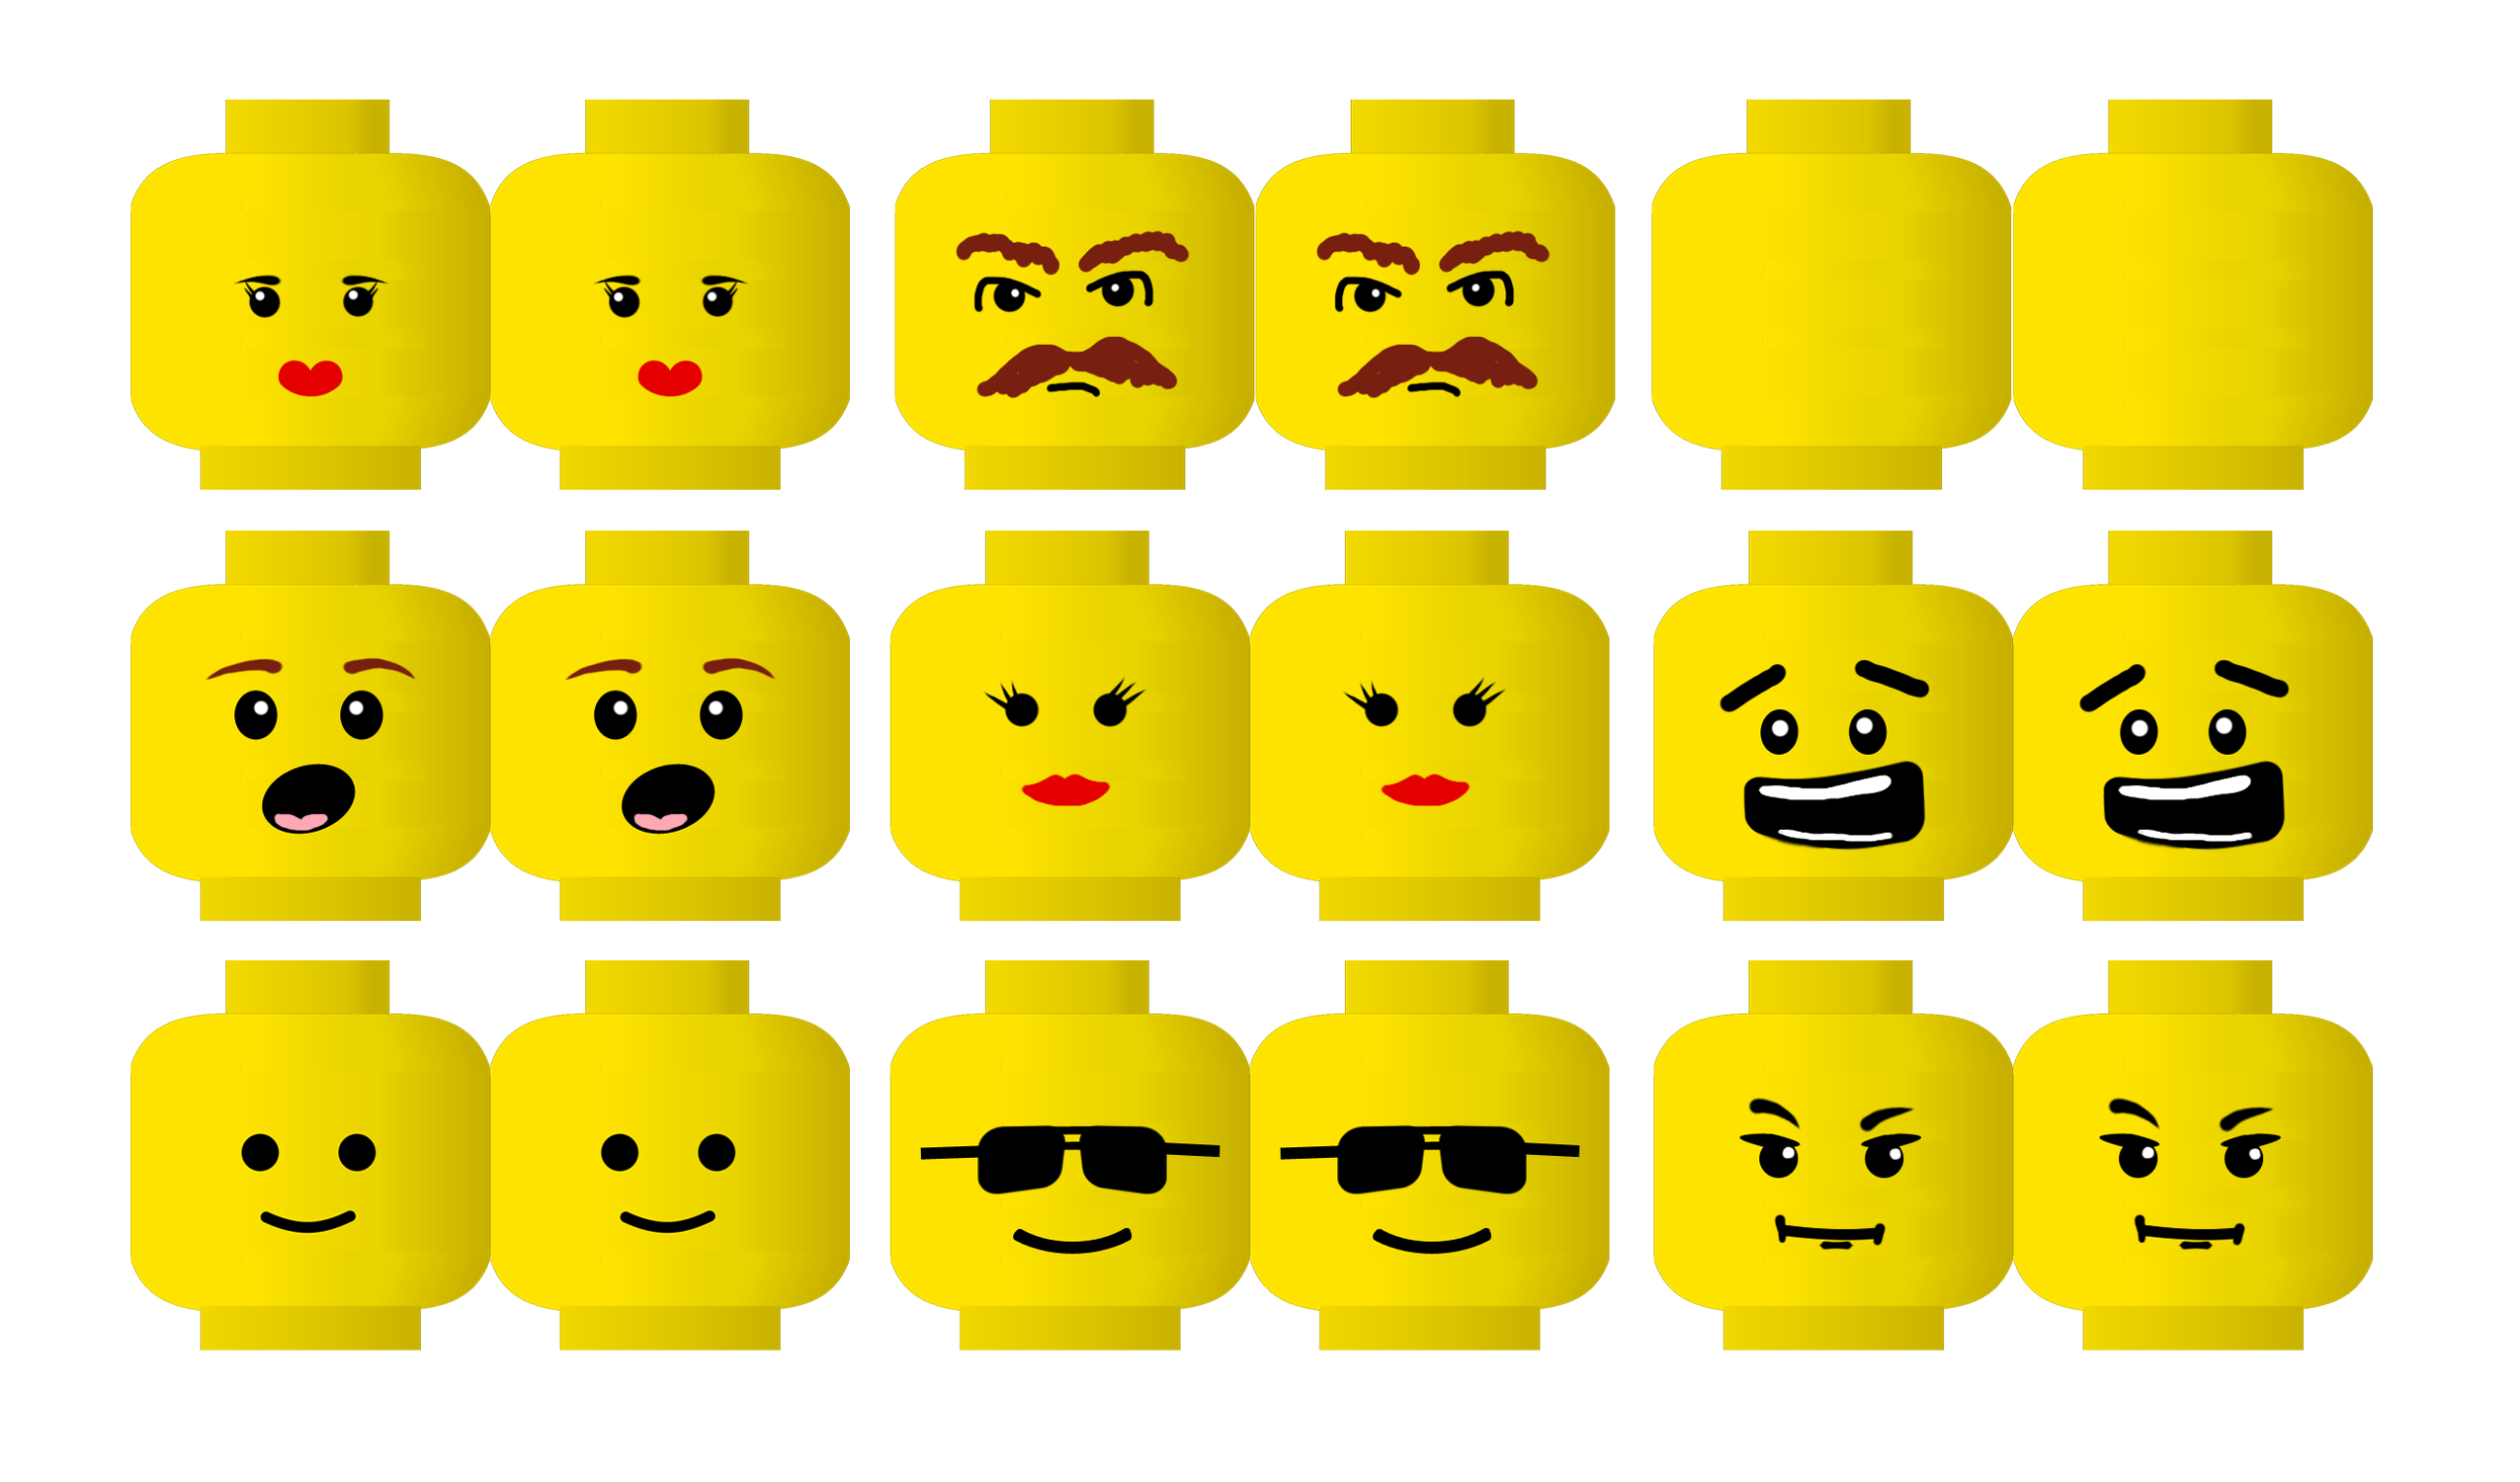 Lego face with sun glasses clipart clipart stock LEGO Printable Activities | ... like it for your Lego party (click ... clipart stock